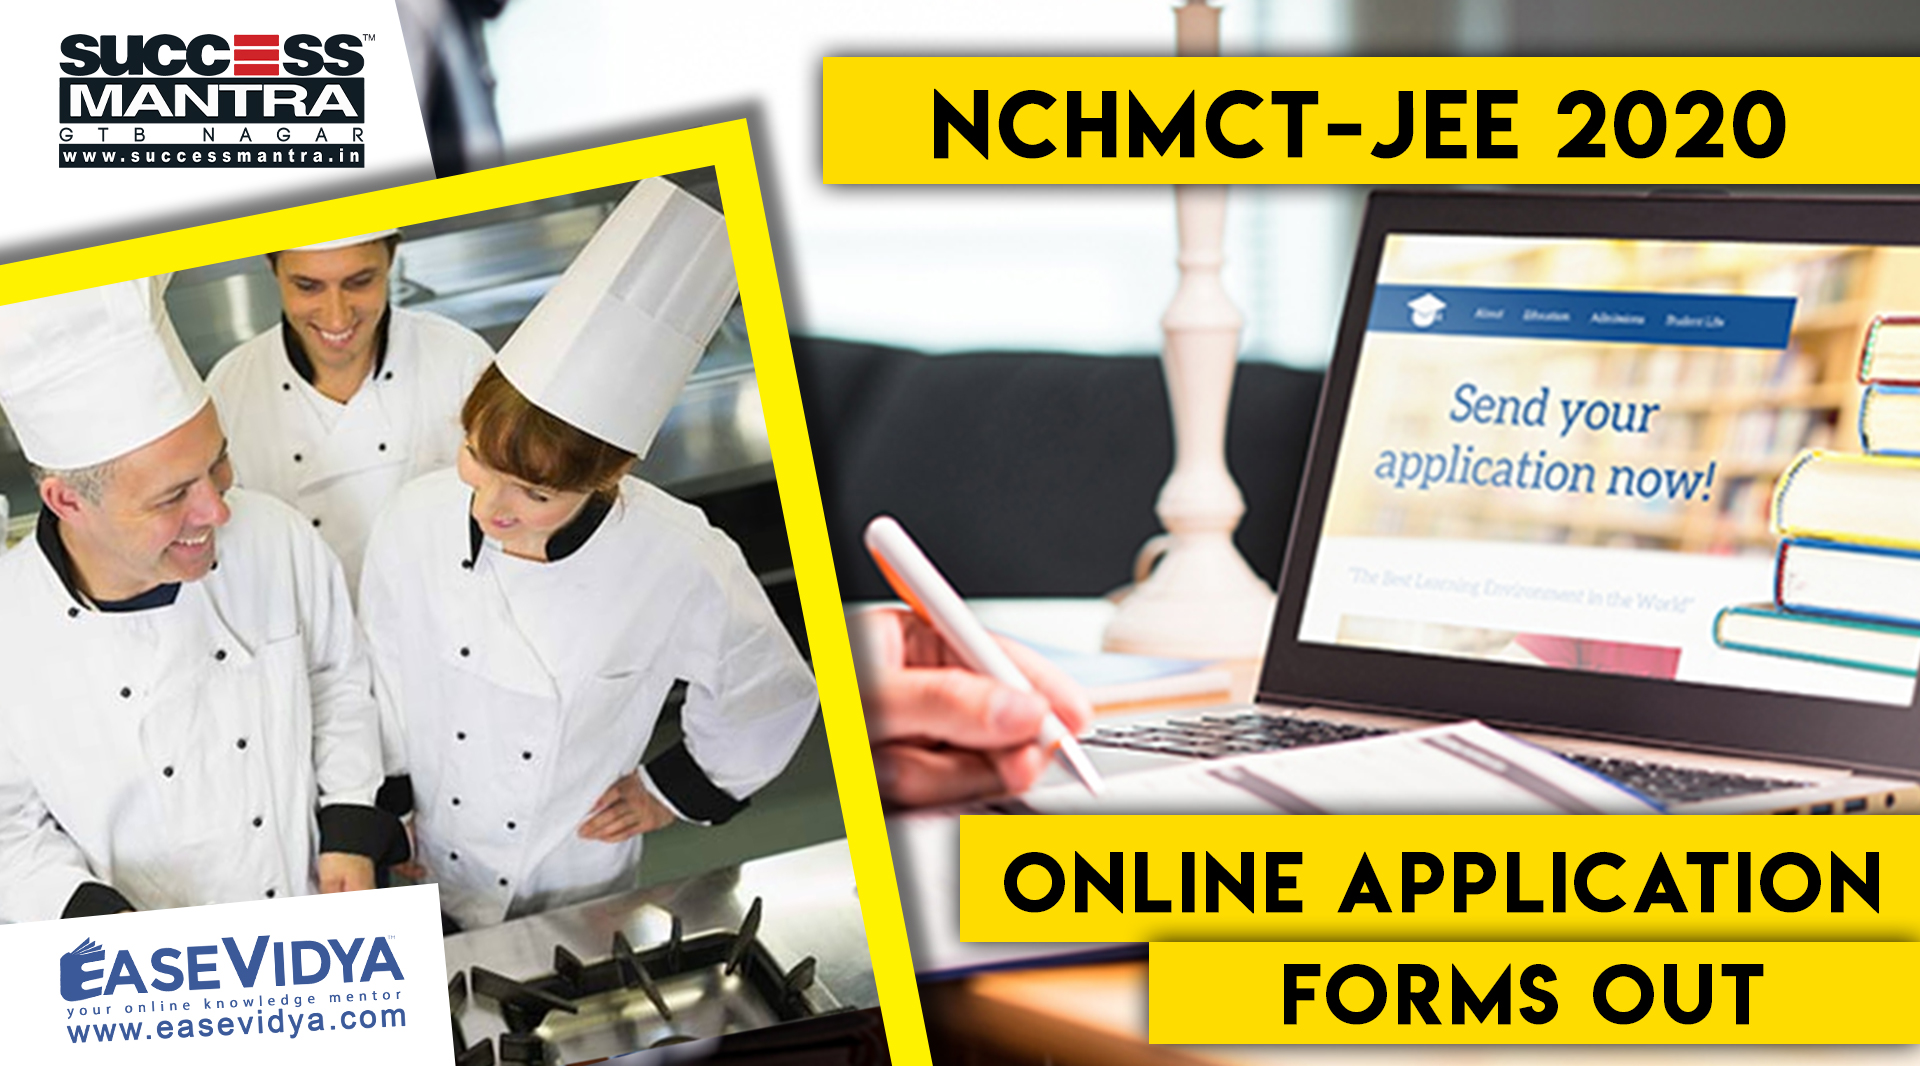 NCHMCT JEE 2020 APPLICATION FORMS OUT | Know the Dates, Application, Syllabus, Last Date to Apply, Pattern And All About NCHMCT JEE Entrance Exam | Success Mantra Coaching For Hotel Management